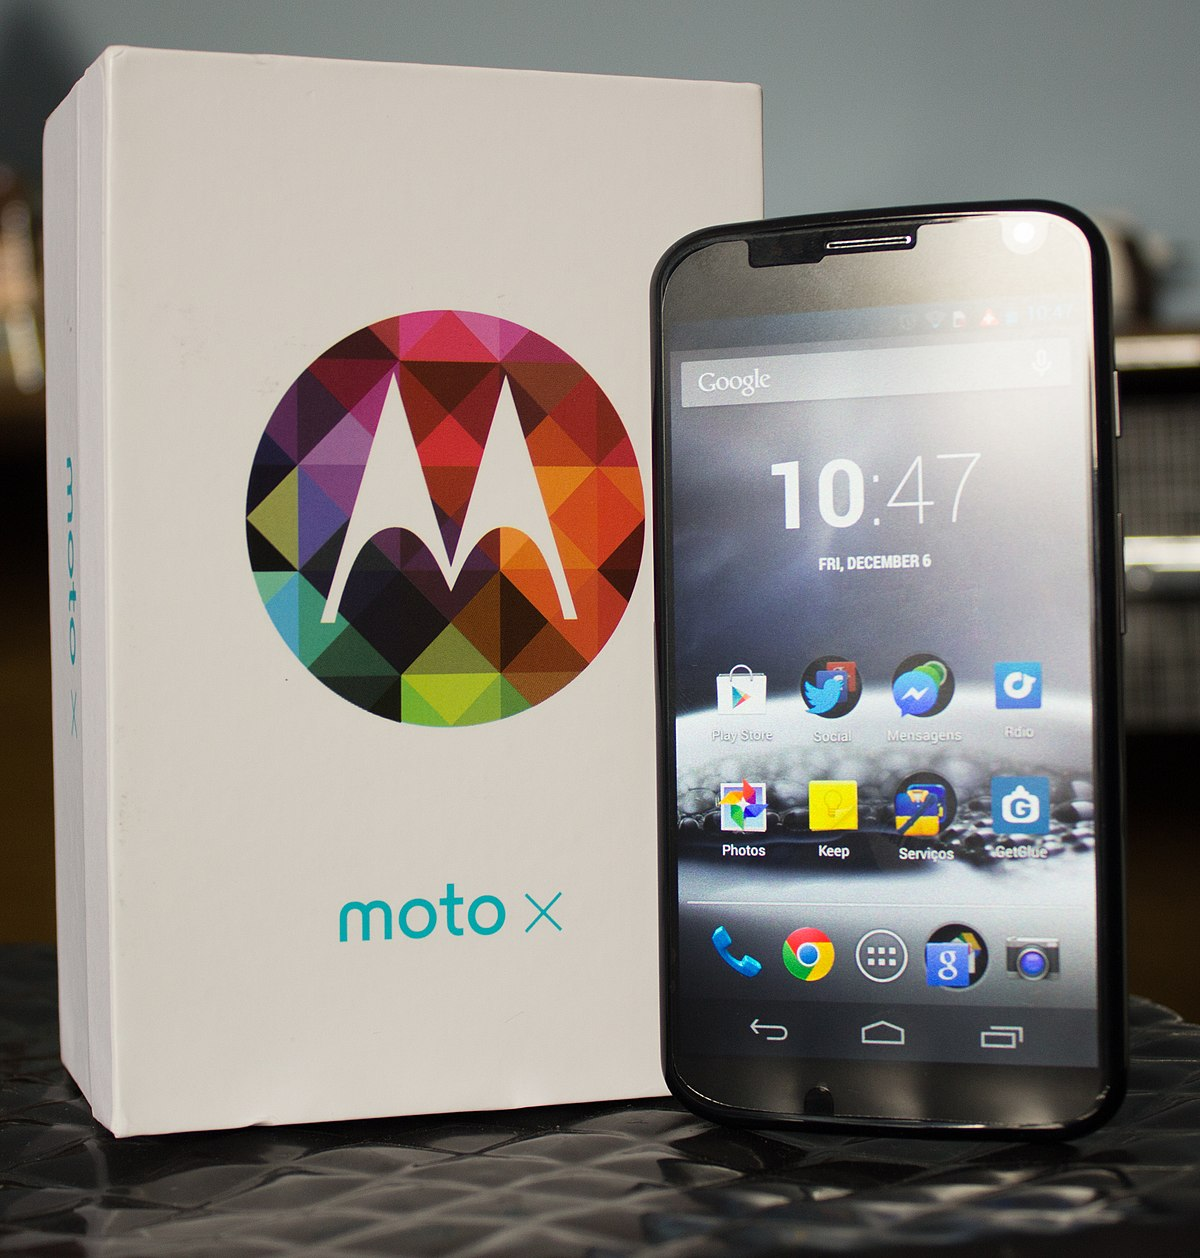 Moto X (1st generation) - Wikipedia